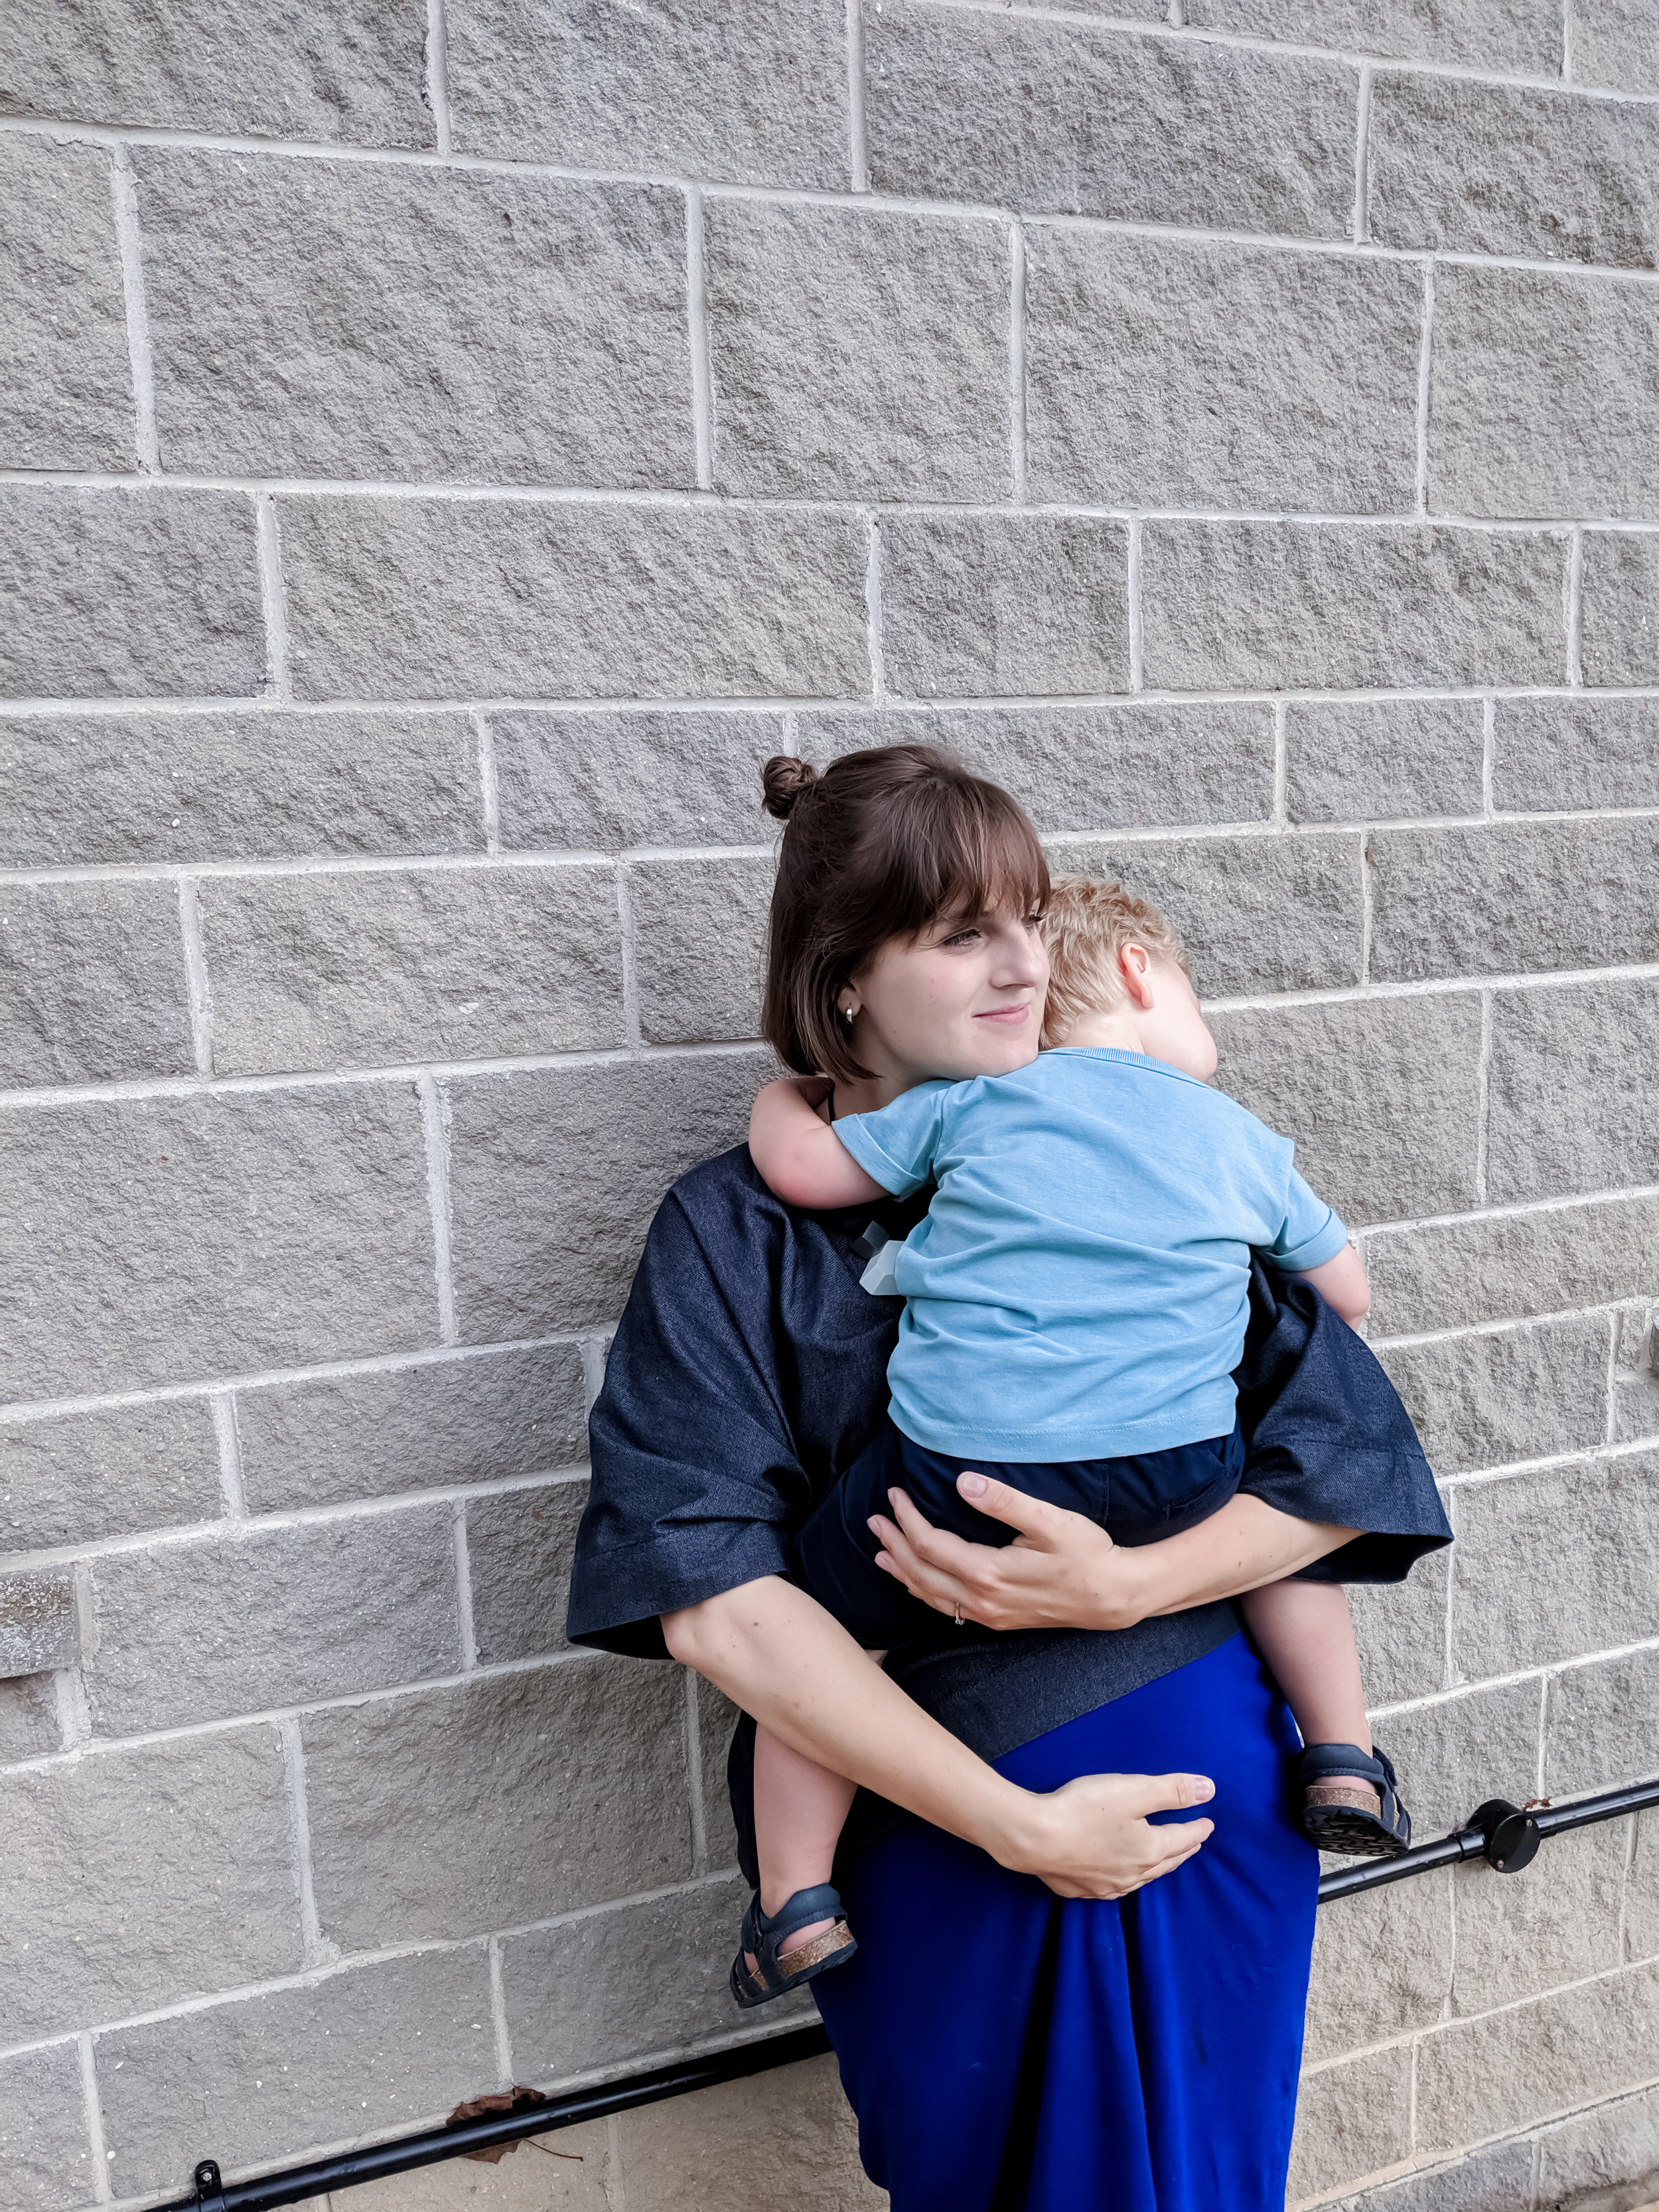 i didn't know it was possible to feel more tired than i did in my last pregnancy -